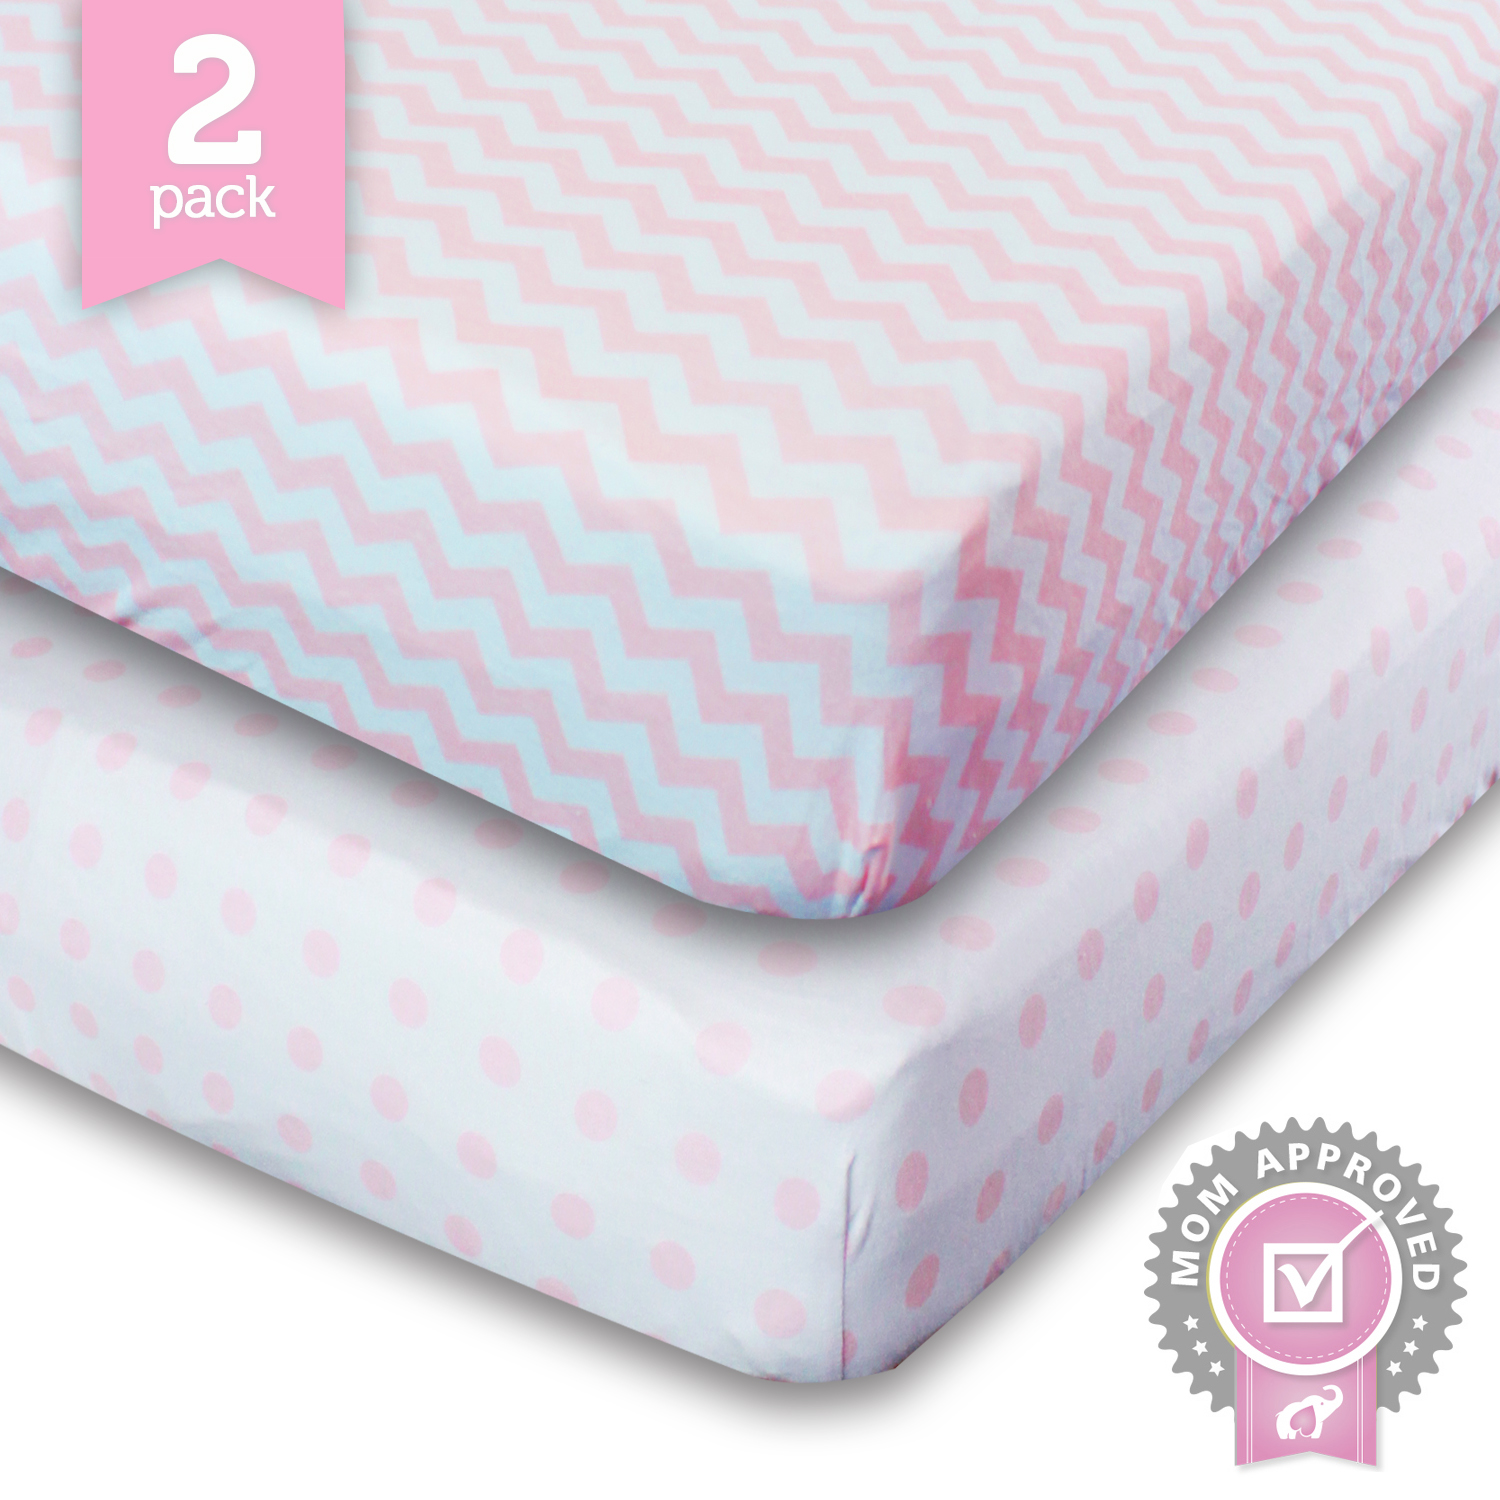 Best crib sheets for baby with eczema -